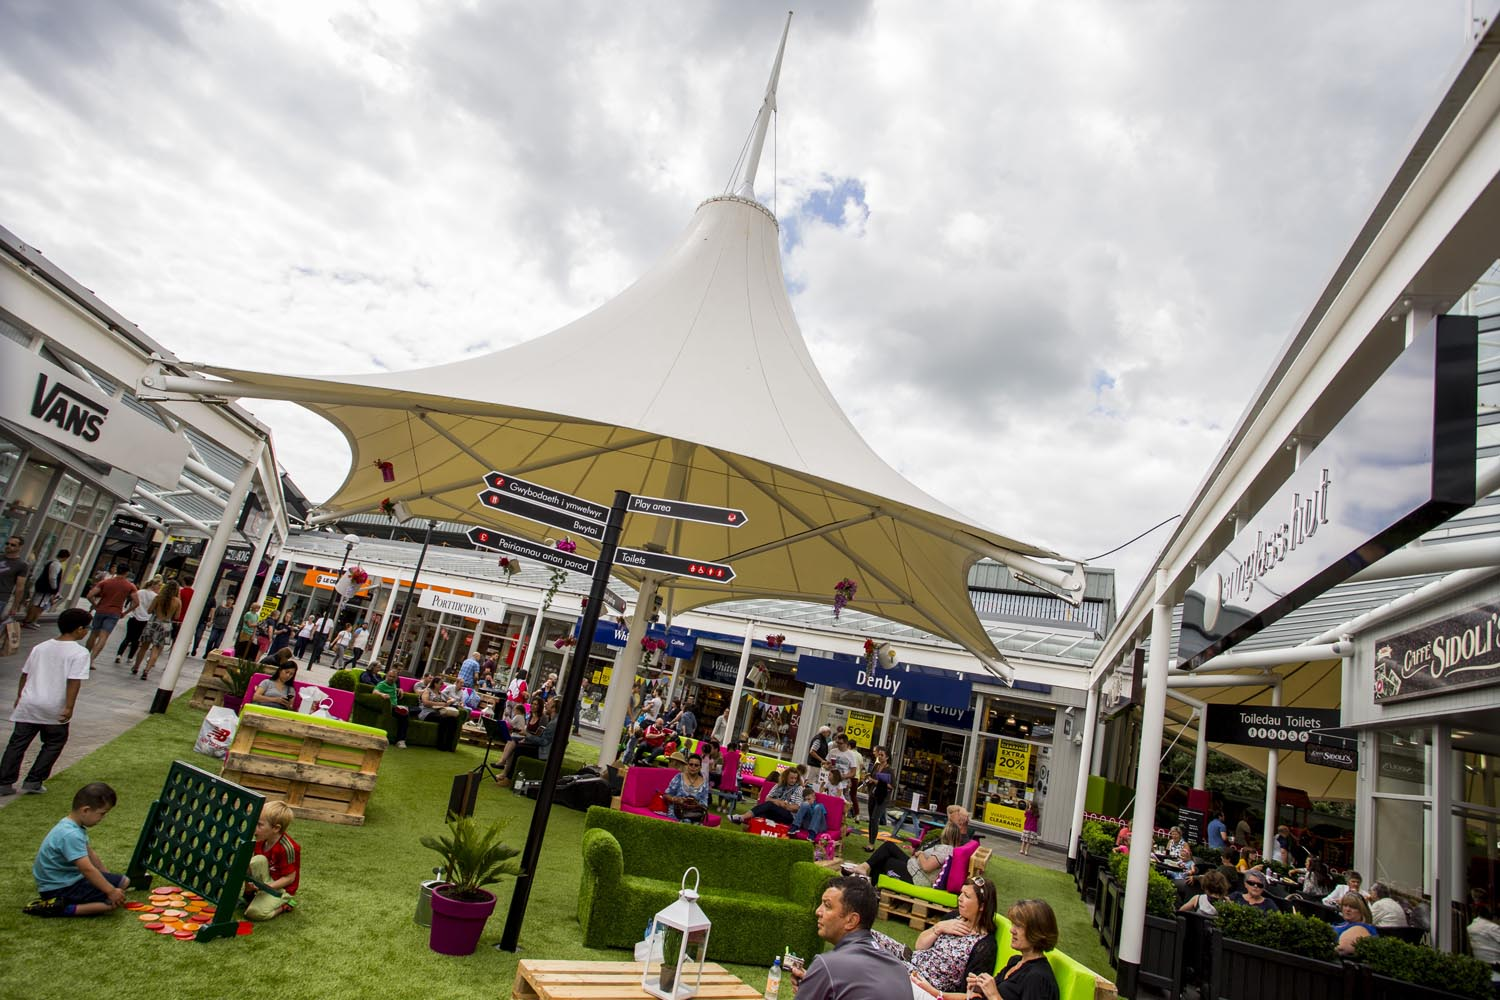 McArthurGlen Designer Outlet Bridgend launches Festival of Summer - Summer garden.JPG